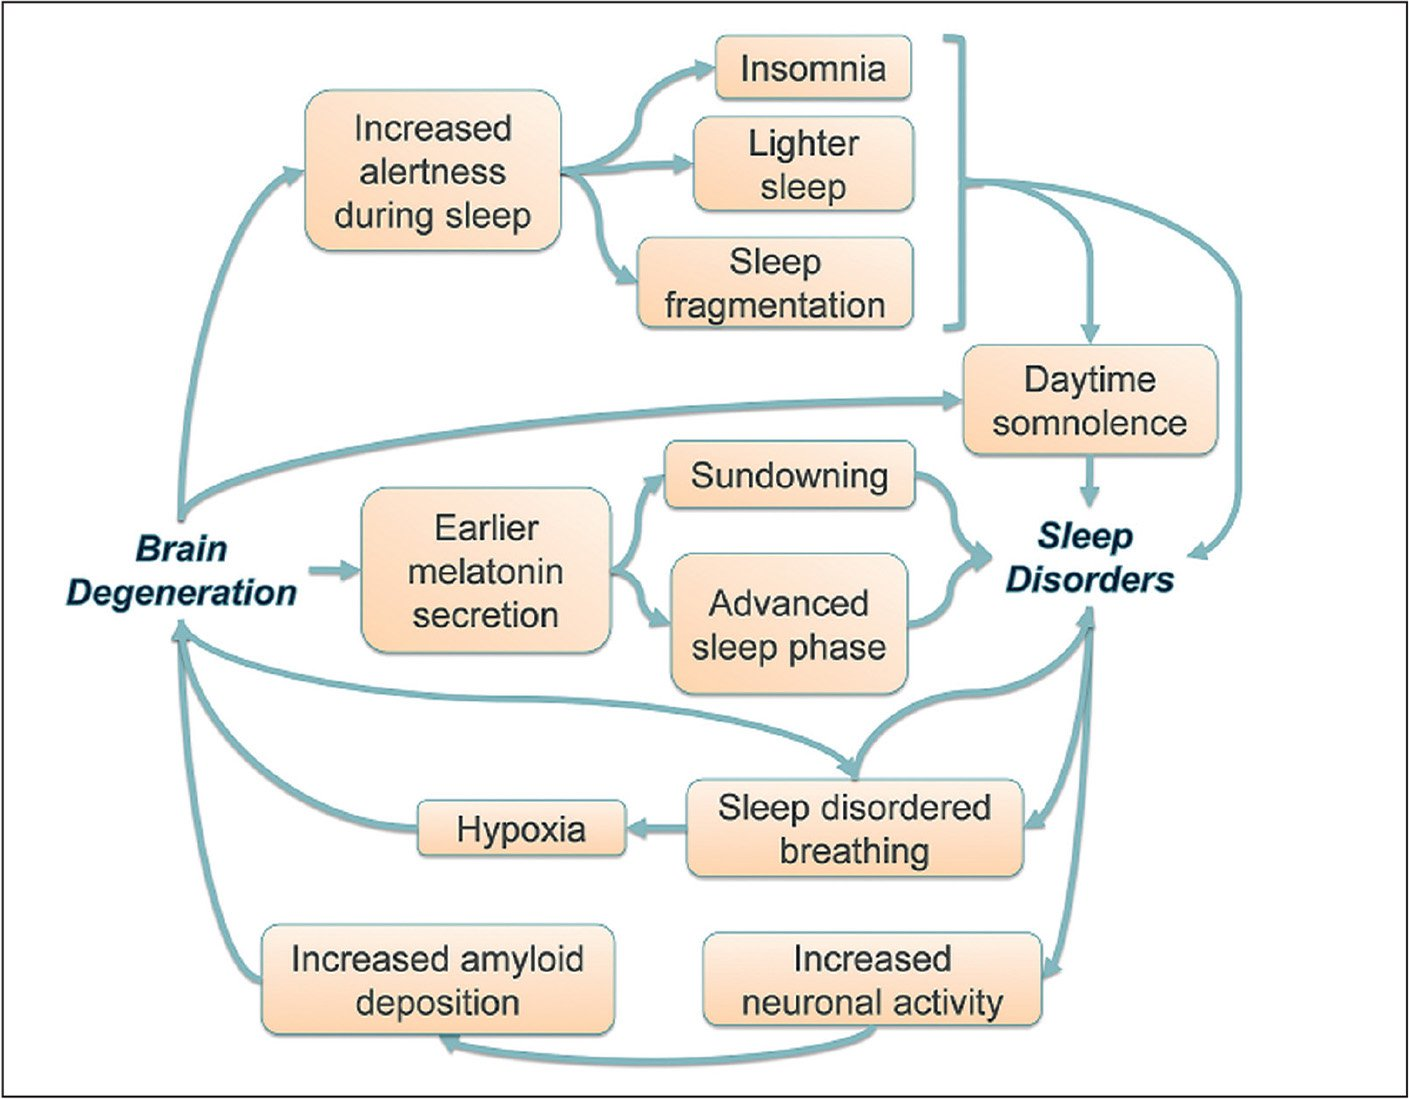 """Bidirectional pathways between neurodegeneration and sleep disorders. Starting from neurodegeneration, one pathway reflects attenuated range of brain activity across the sleep-wake cycle, translating as insomnia, sleep fragmentation, and daytime somnolence. A second pathway leads to sleep phase disorder and contributes to sleep fragmentation and """"sundowning."""" Obversely, sleep disorders can lead to neurodegeneration through prolonged neuronal activation, as promoted by sleep deprivation and decreased slow wave sleep. Finally, pathways intersect when it comes to sleep-disordered breathing, with bidirectional causal relationships between disrupted sleep and neurodegeneration."""